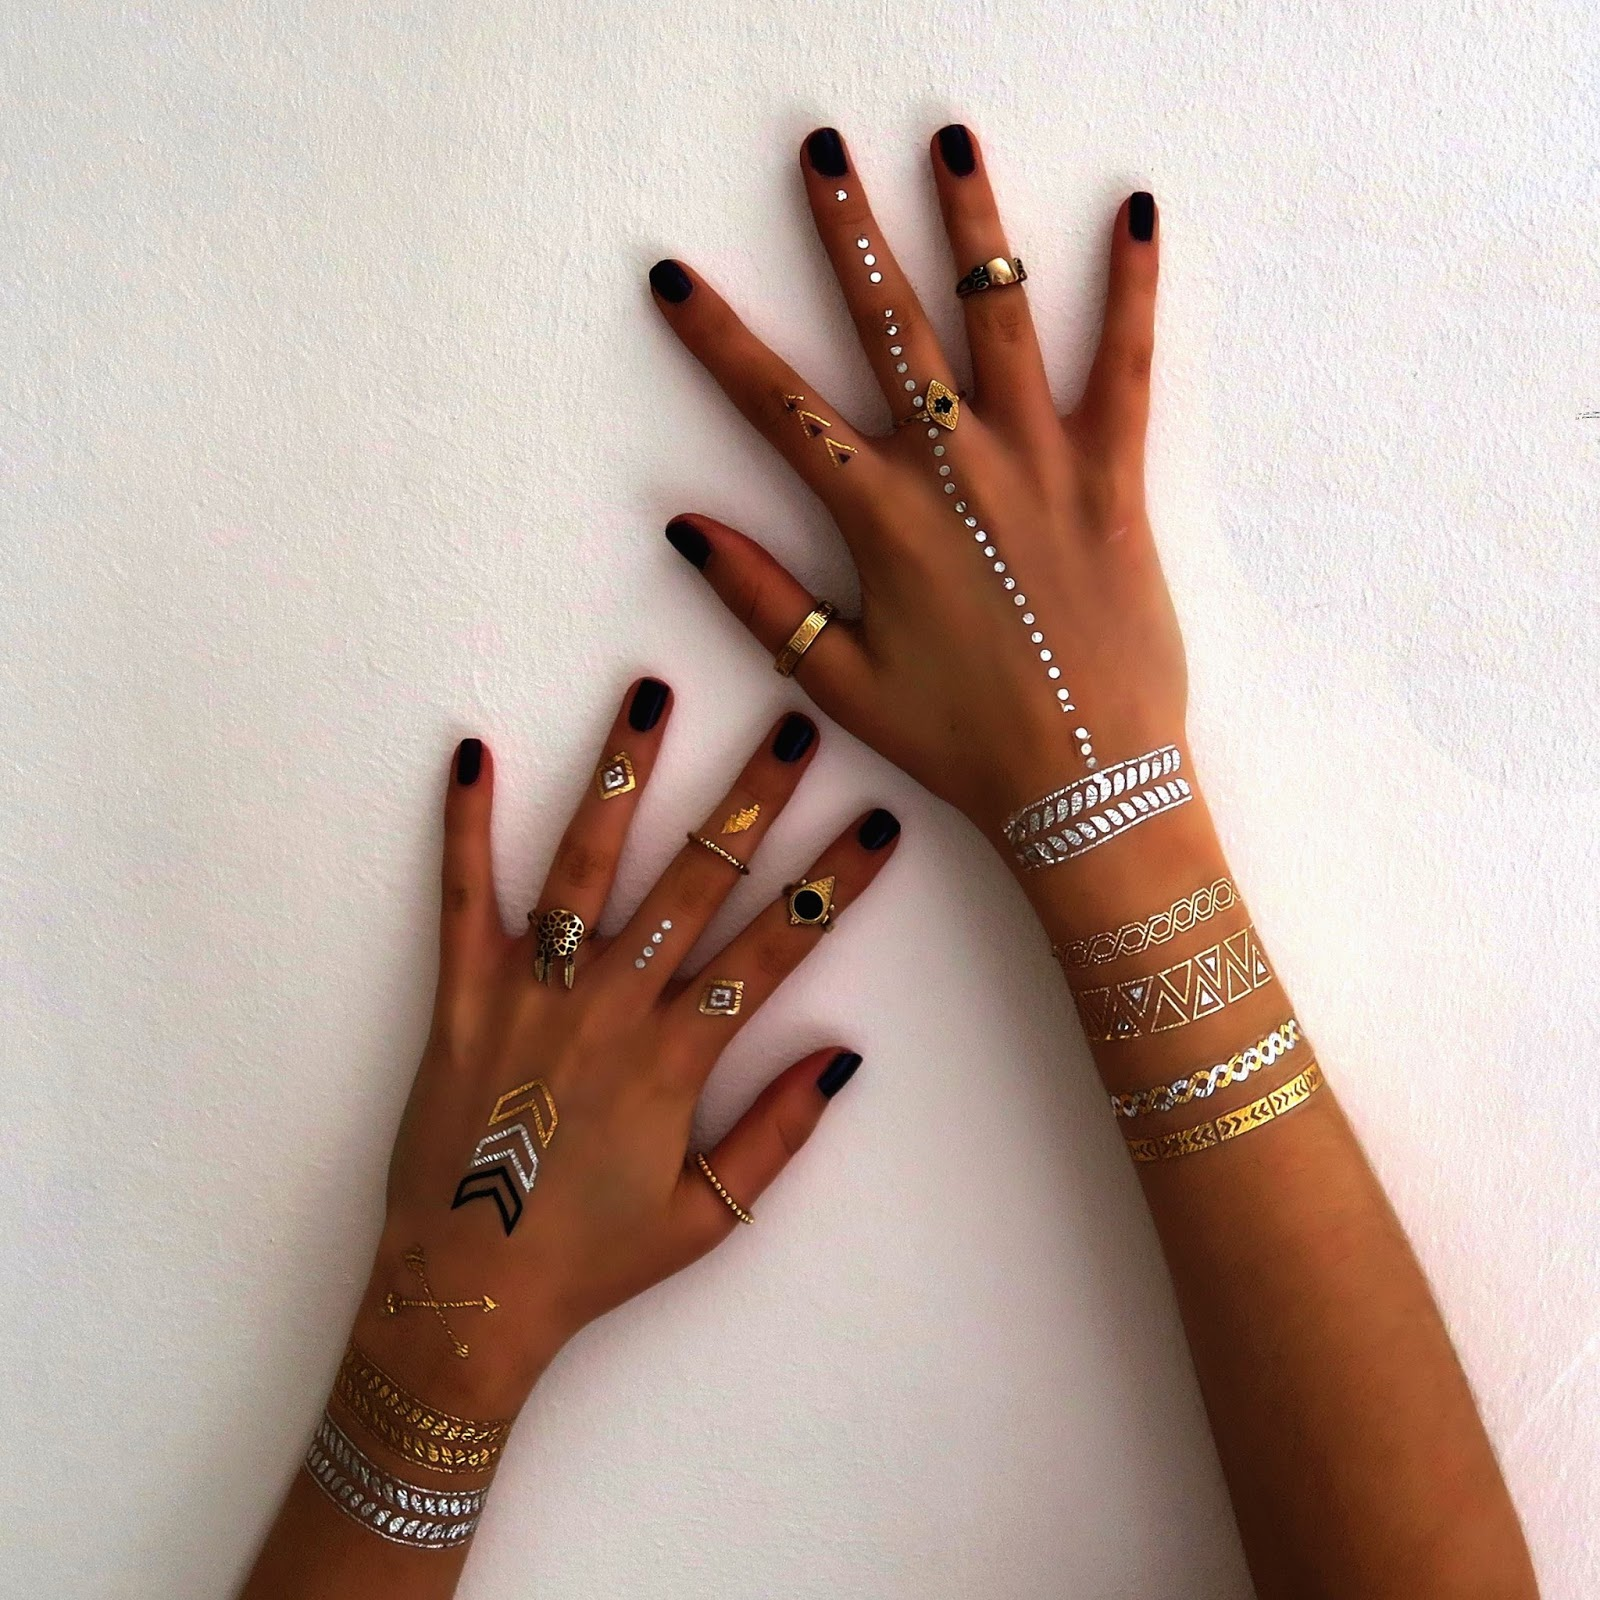 boho-metallic-flash-tattoos-festival-style @ hayleyeszti